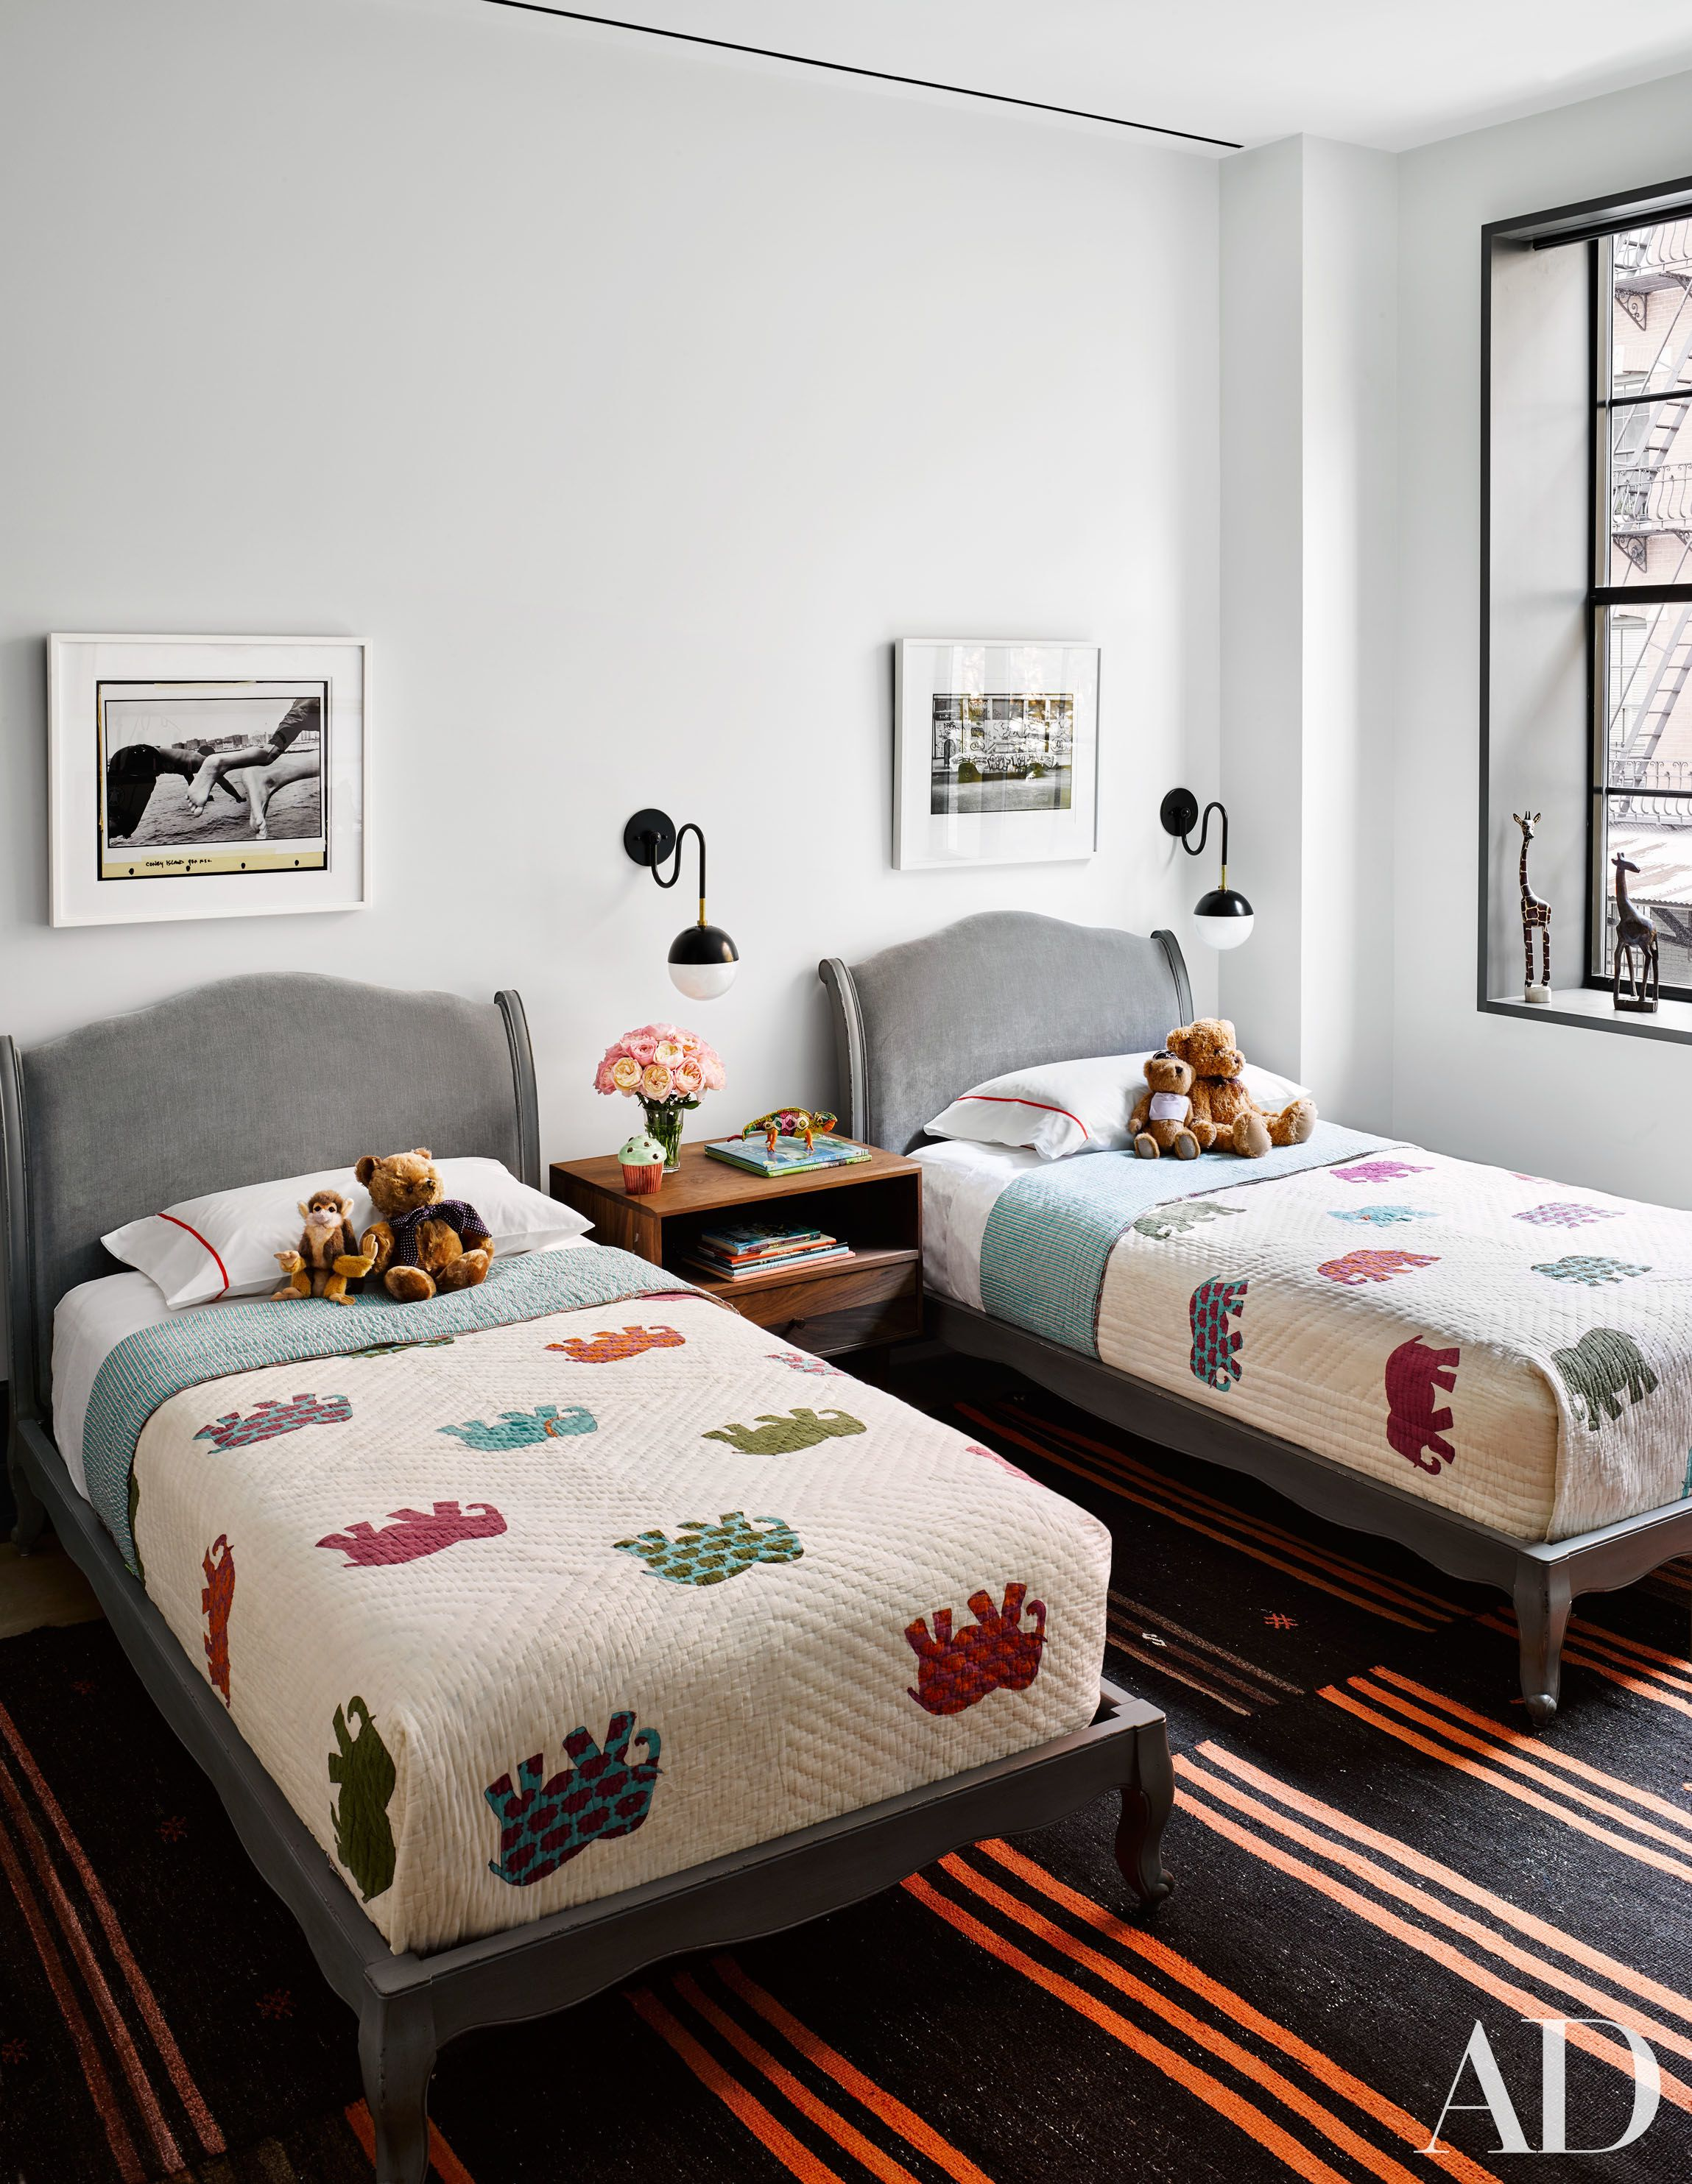 Naomi Watts And Liev Schreiber S Stunning New York City Apartment Stylish Kids Bedroom Kid Room Decor Kid Beds